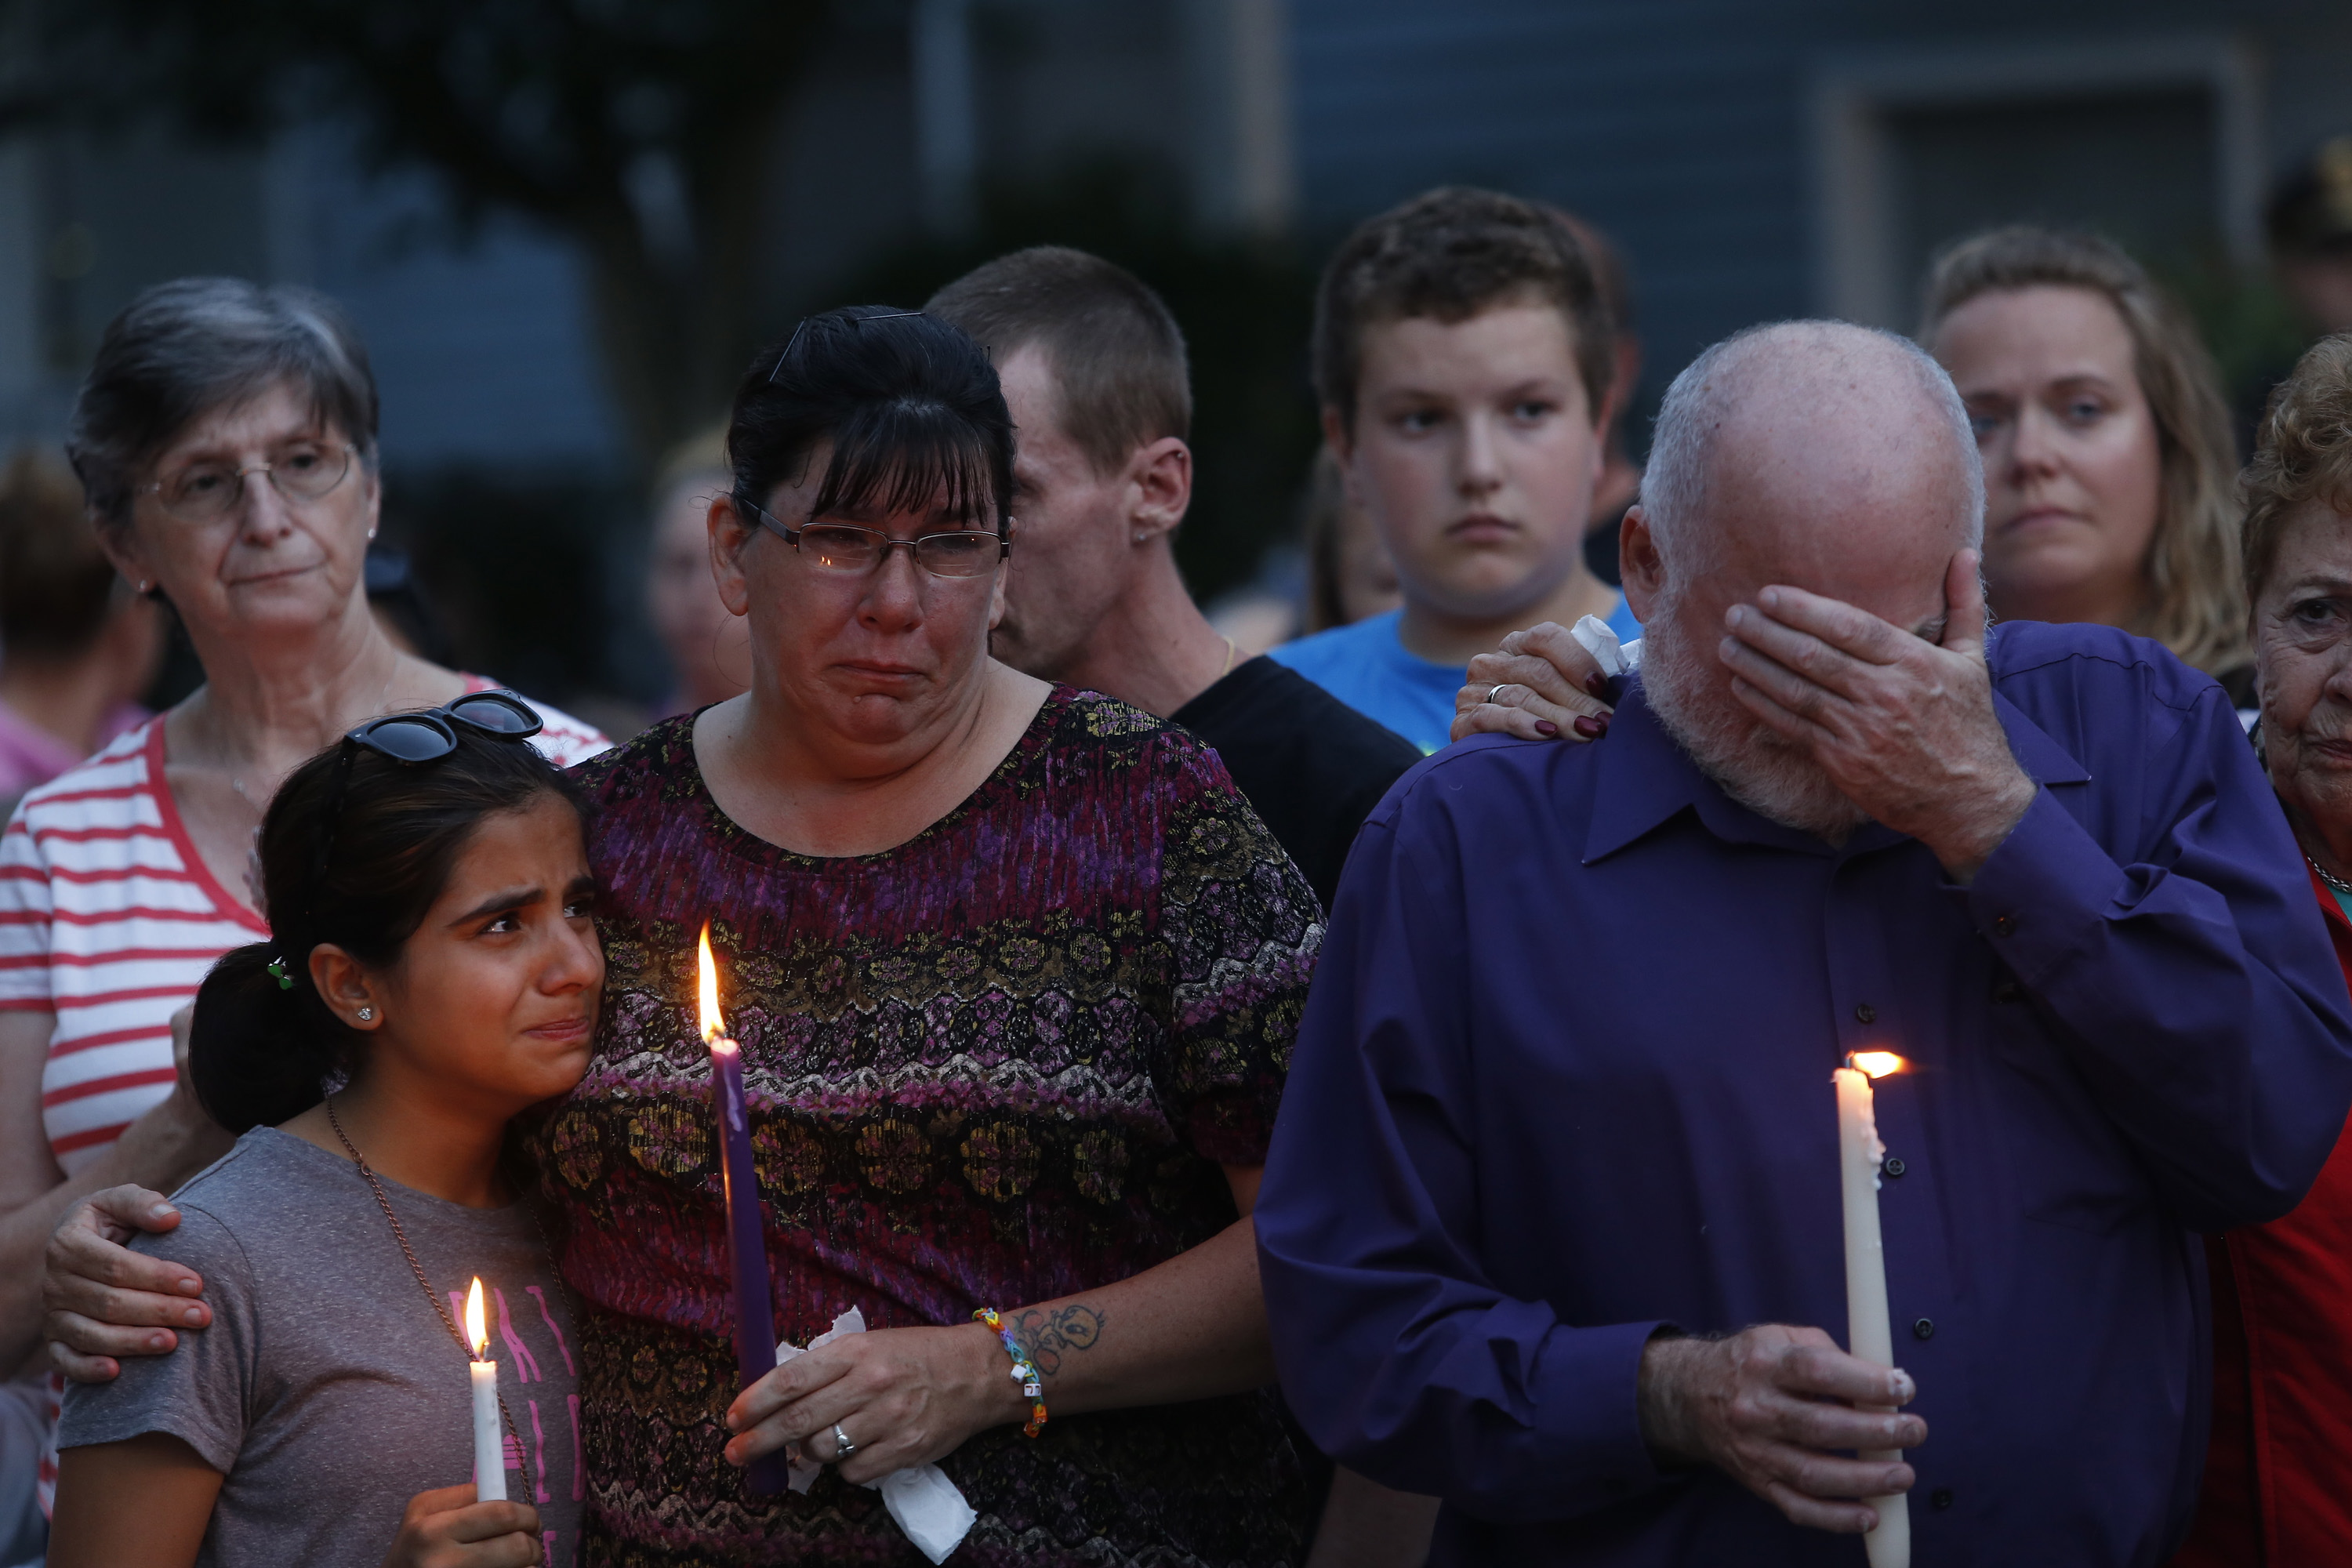 """Becca Garland comforts her neighbor Youna Karim, 12, during a vigil for the Smith family at the RiverView apartments in Saco on Tuesday night, while Joel Smith's father, Steve Smith, covers his face.  Garland said, """"I was her best friend here,"""" speaking of Heather Smith, one of the victims. """"We had a barbeque on Saturday night and I kissed her and told her 'I love you and I will see you tomorrow.'"""""""